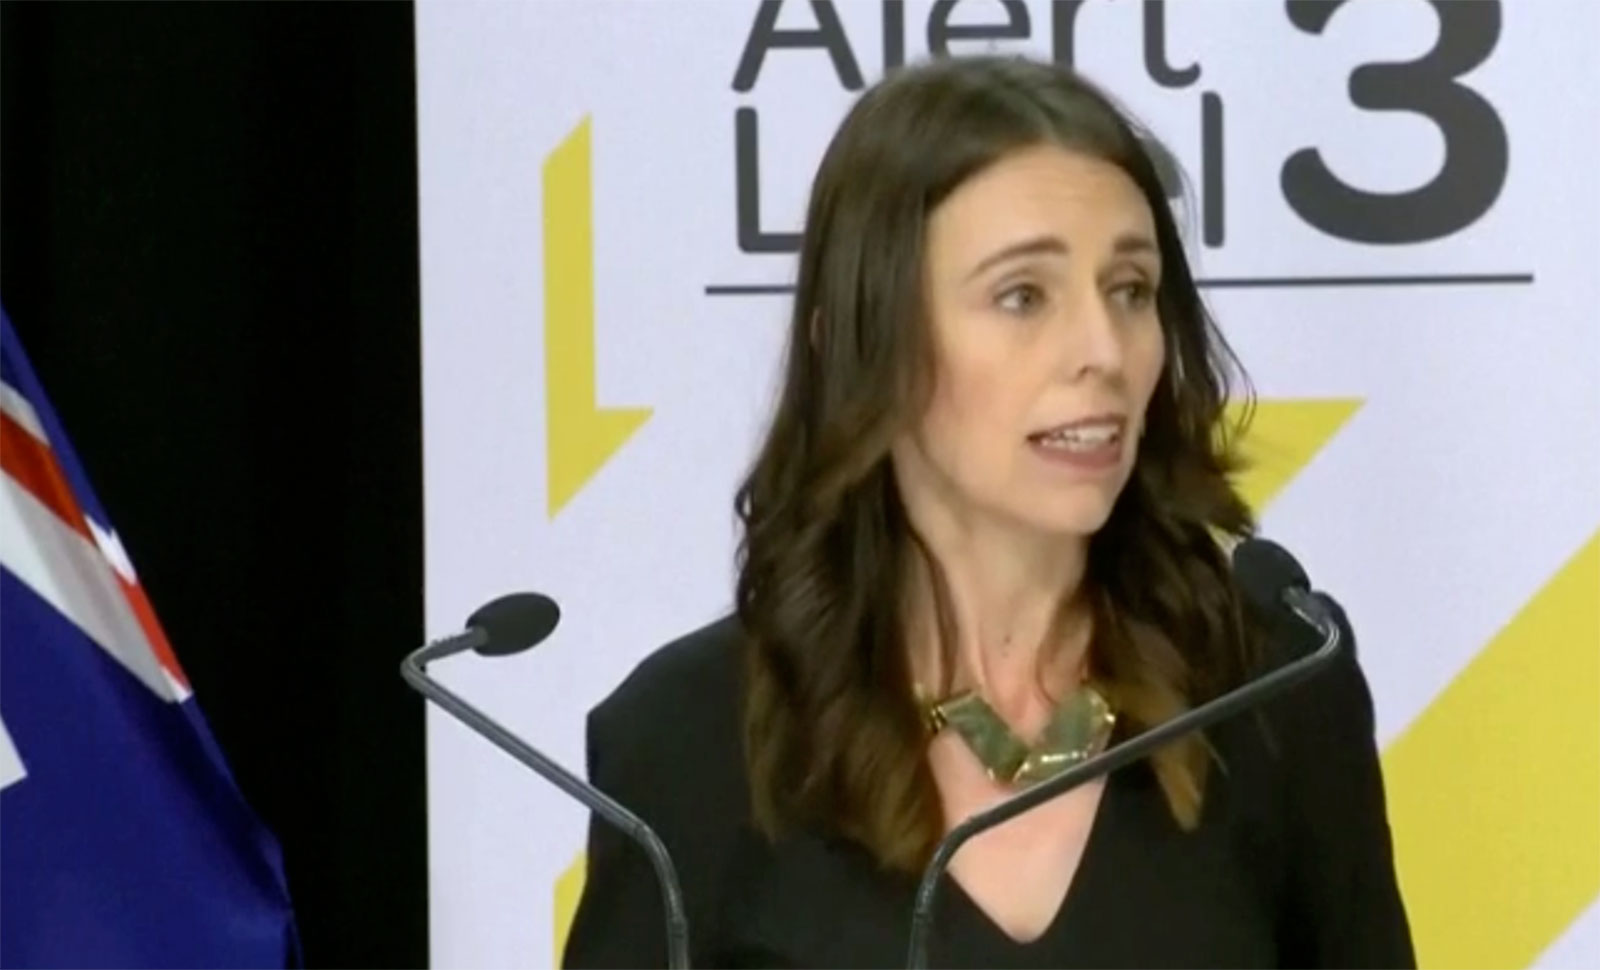 New Zealand Prime Minister Jacinda Ardern speaks at a news conference on May 11.